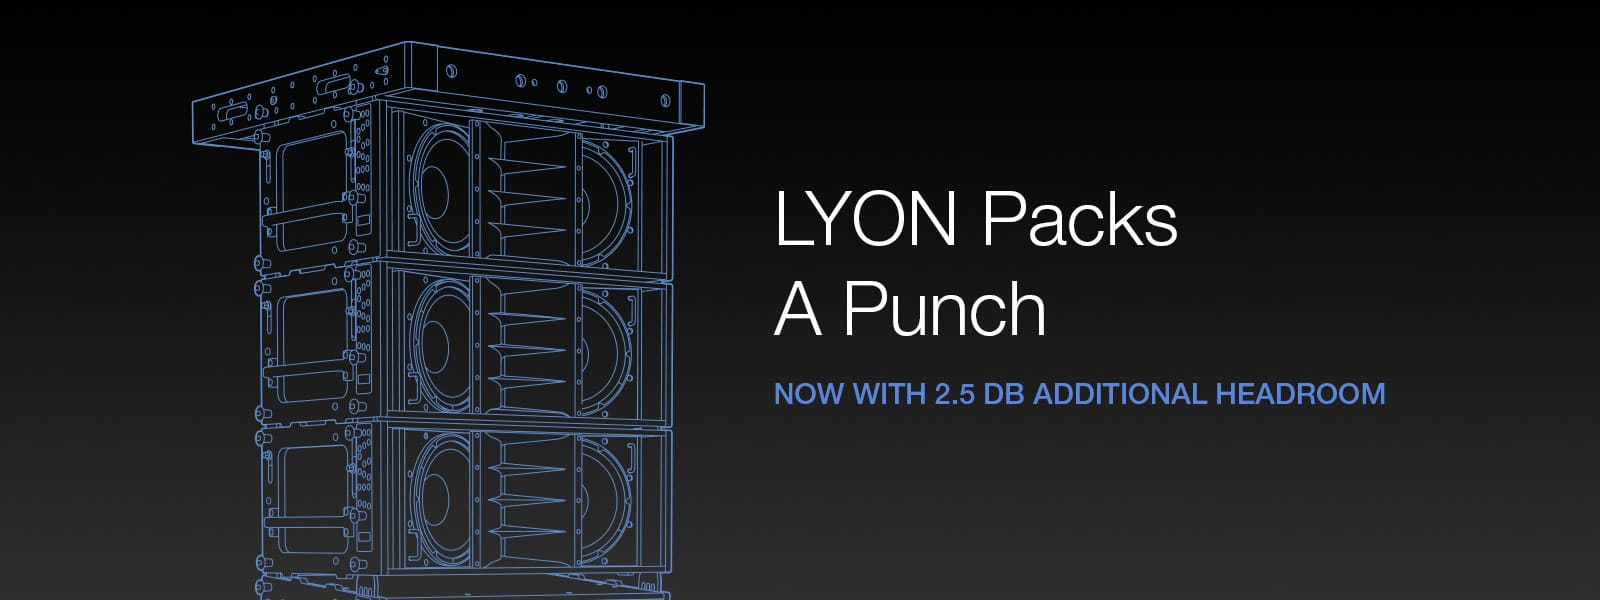 LYON Now With 2.5 dB Additional Headroom